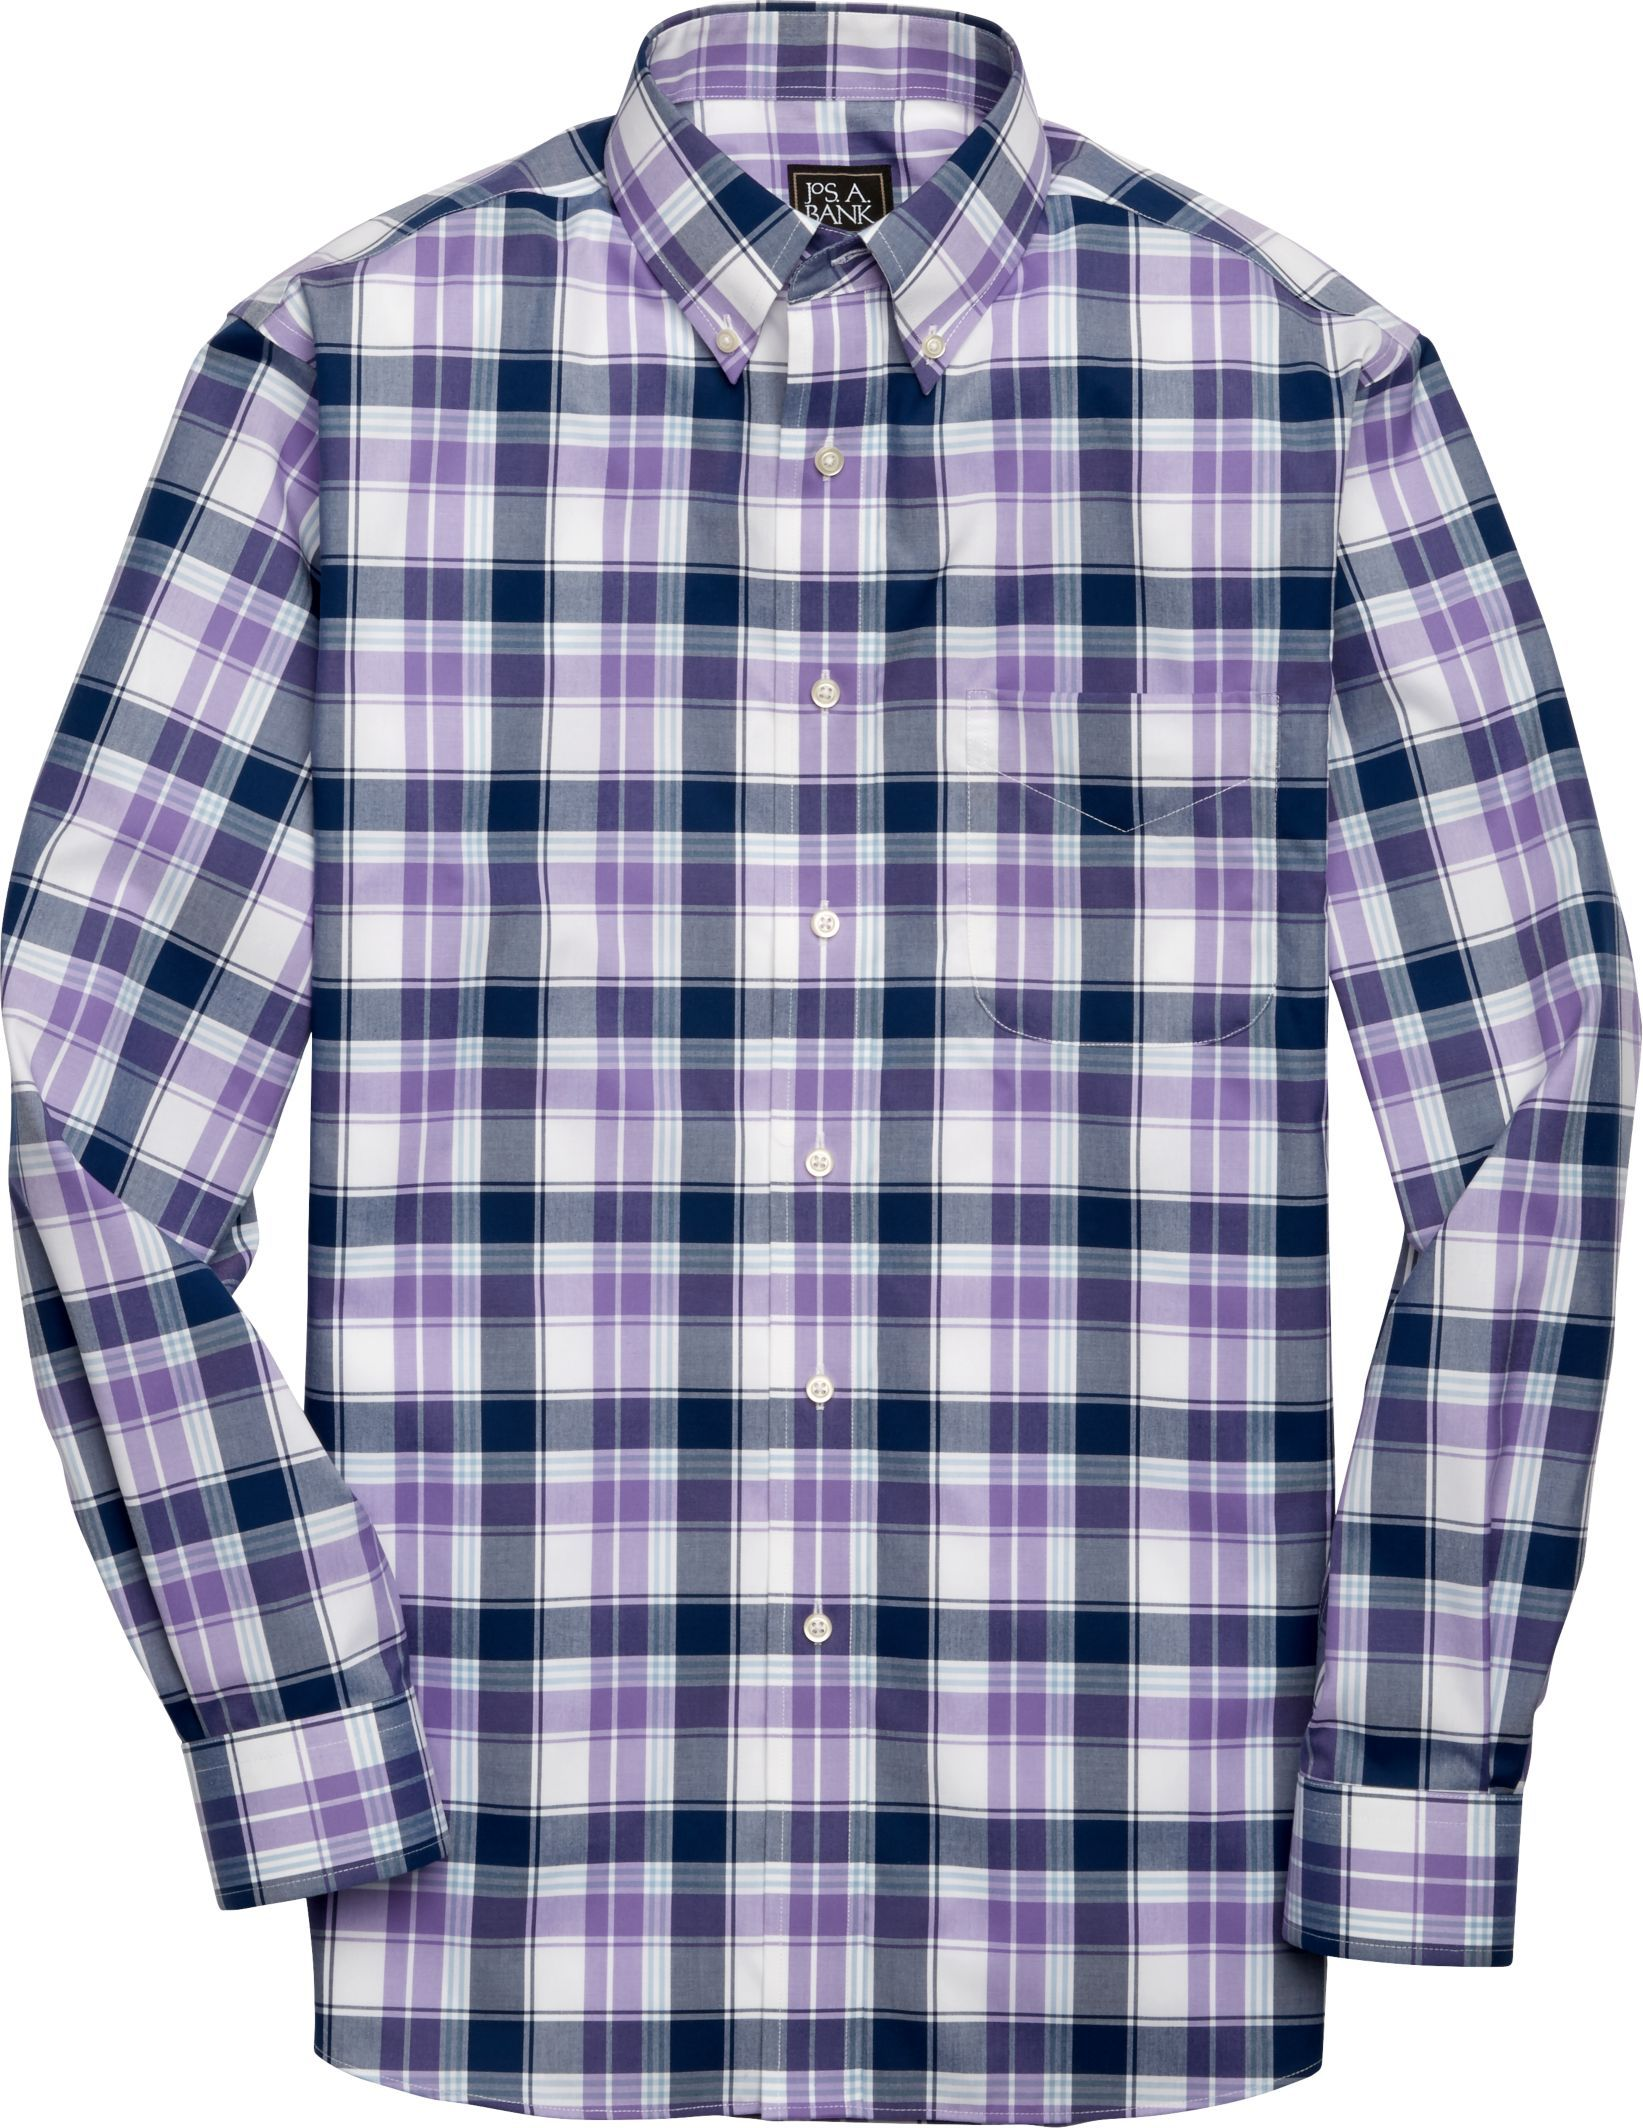 Traveler Collection Traditional Fit Button-Down Collar Plaid Sportshirt - Big & Tall